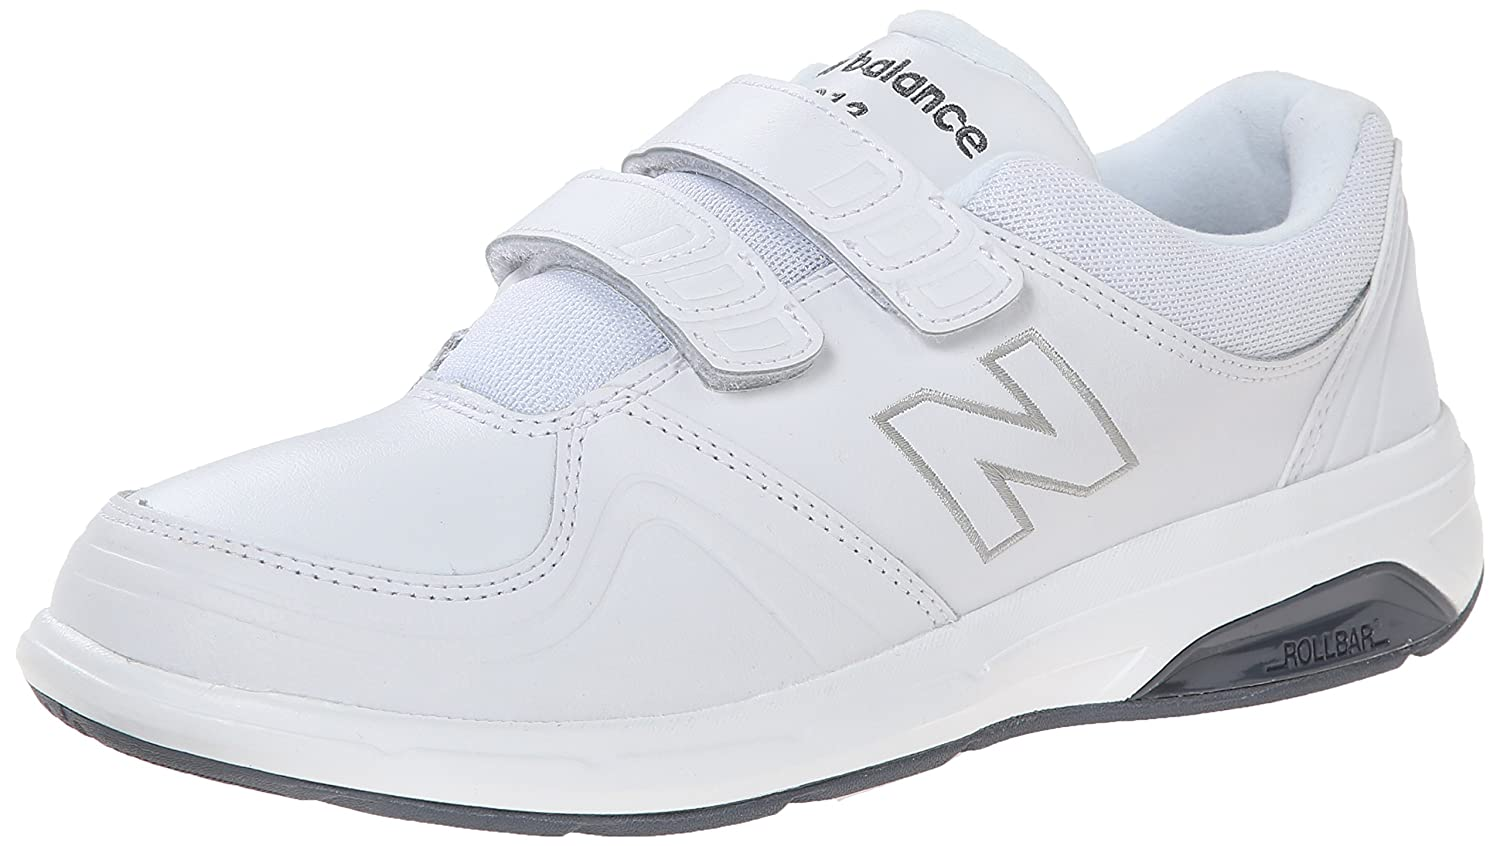 New Balance Women's WW813 Hook and Loop Walking Shoe B00OB1TG0E 13 2A US|White